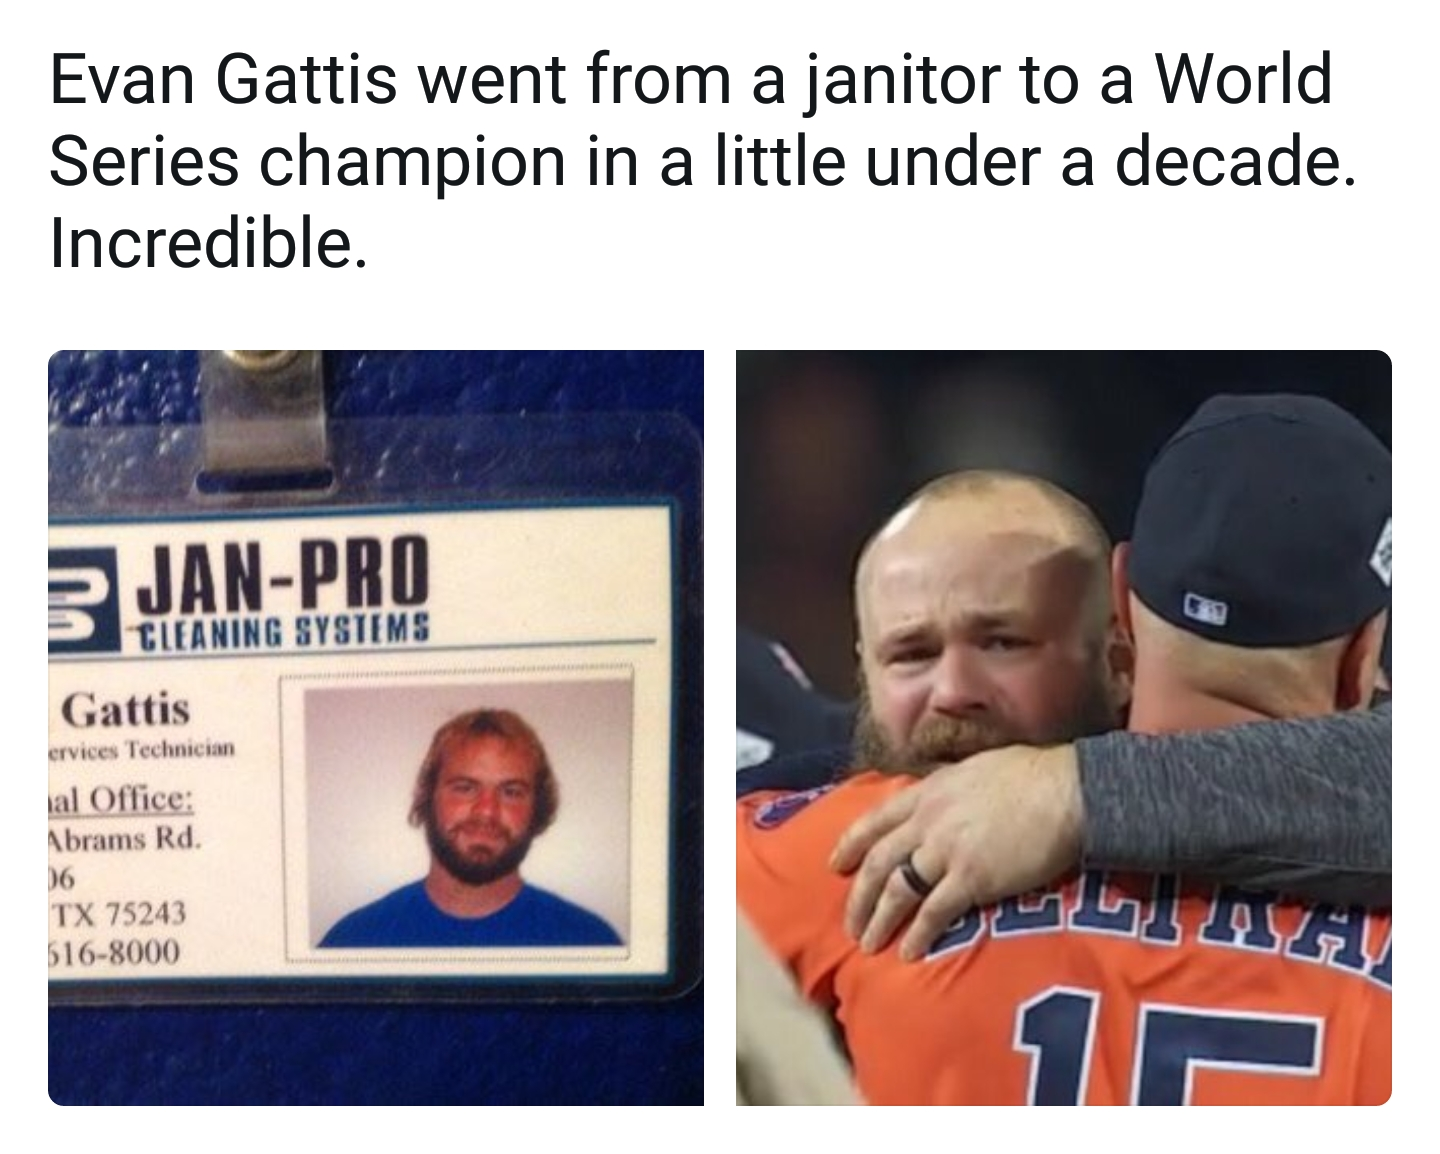 [Image] Houston Astros player used to be a janitor